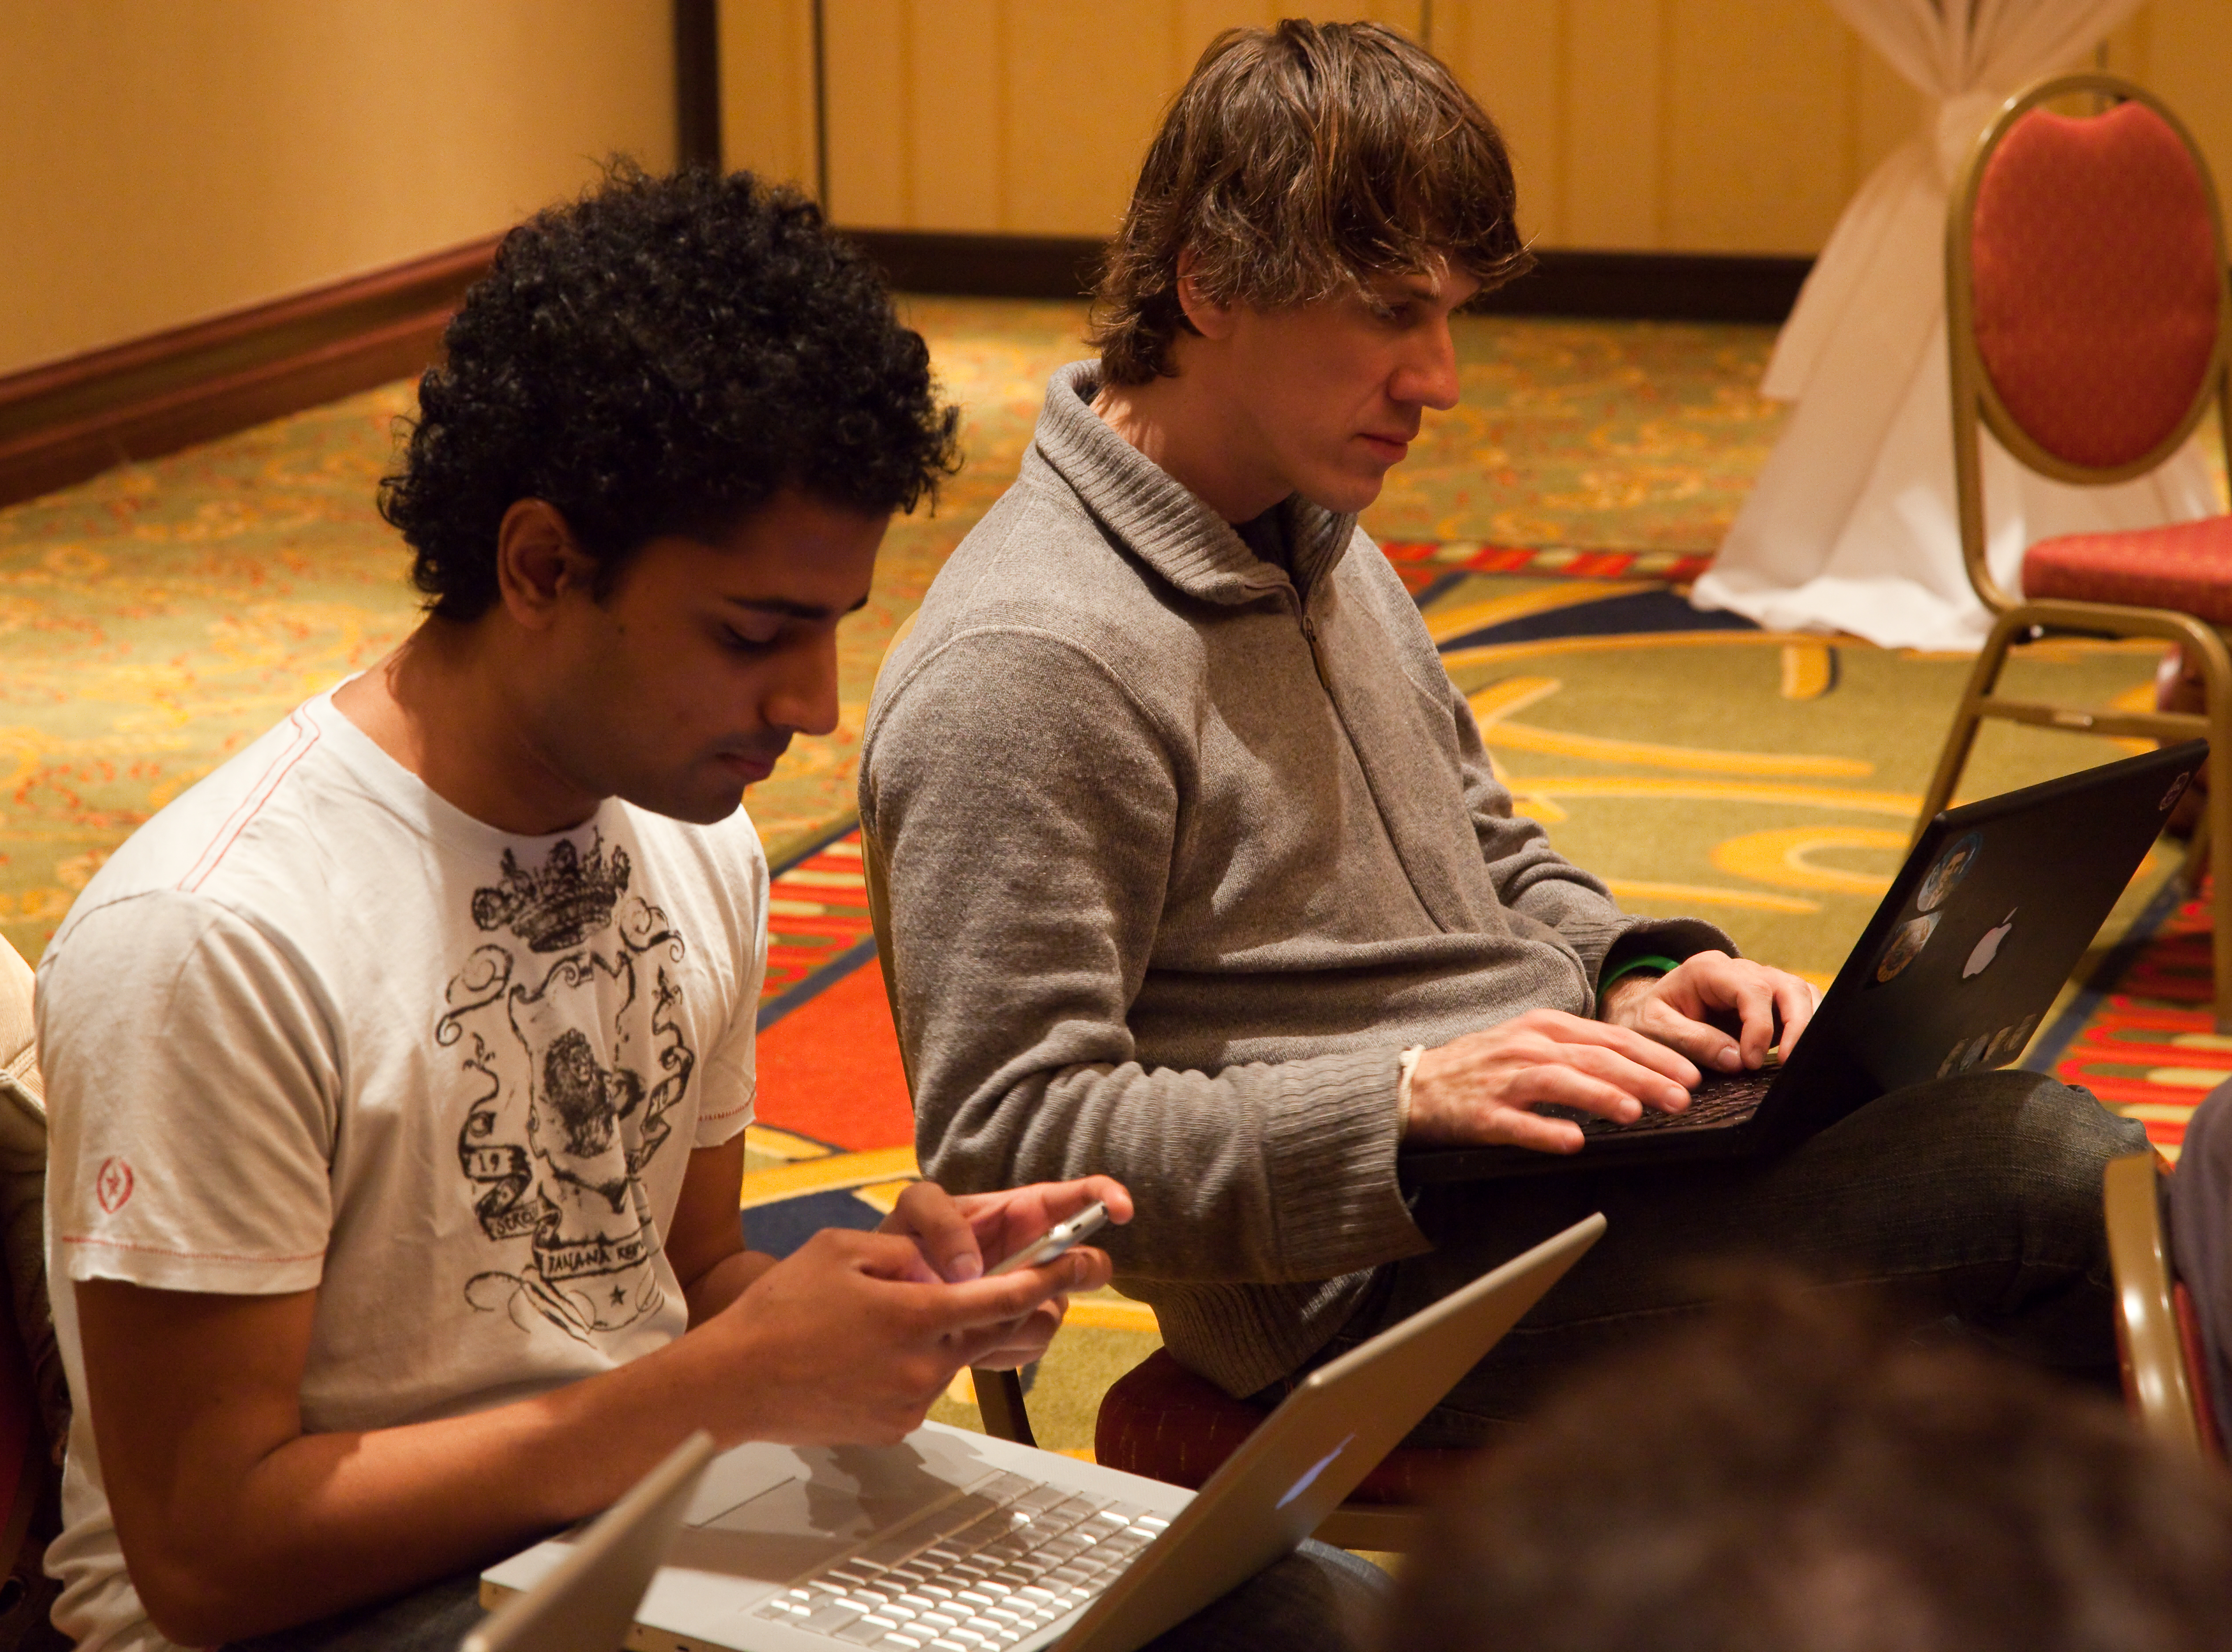 Foursquare co-founders Naveen Selvadurai (left) and Dennis Crowley.